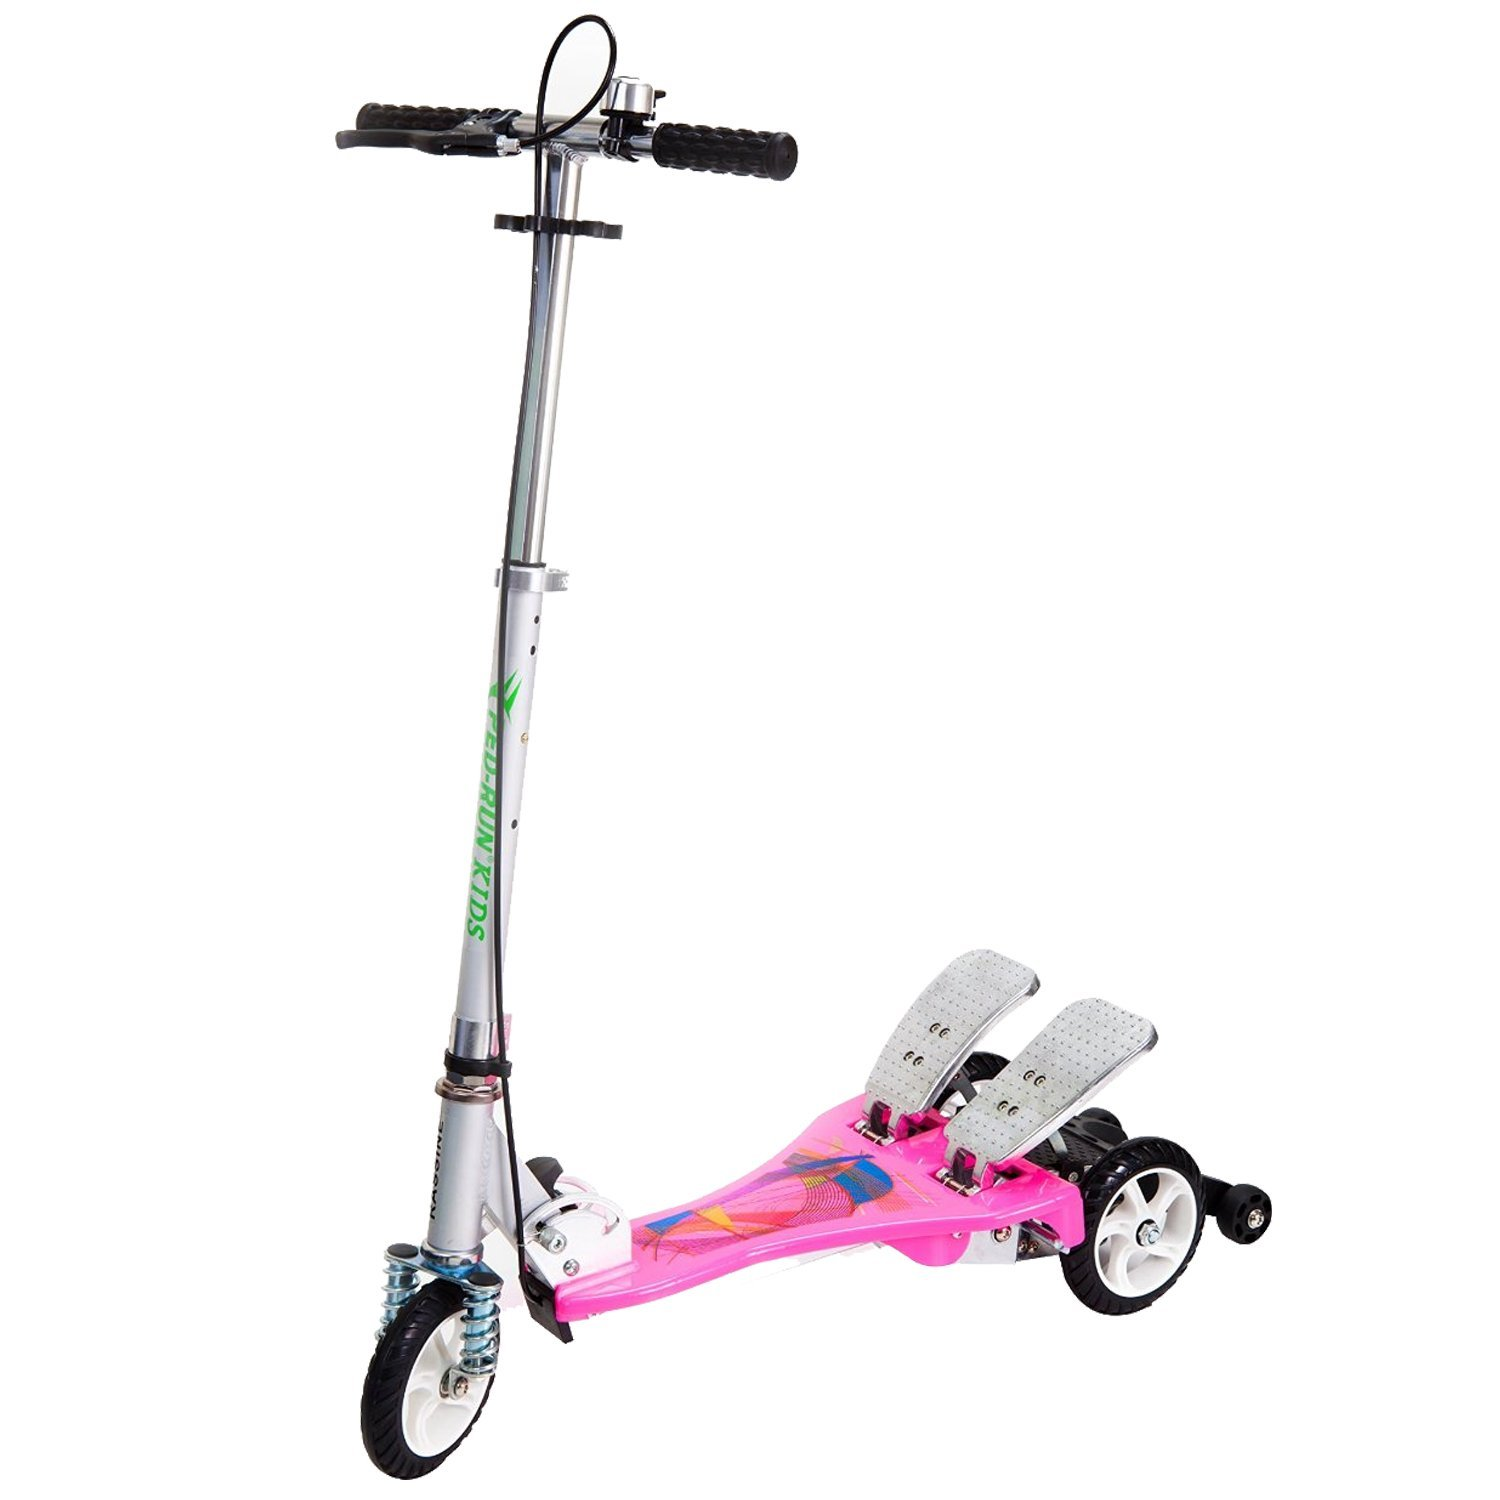 Bike Rassine Kid's Ped-Run Dual Pedal Scooter, Pink by Bike Rassine